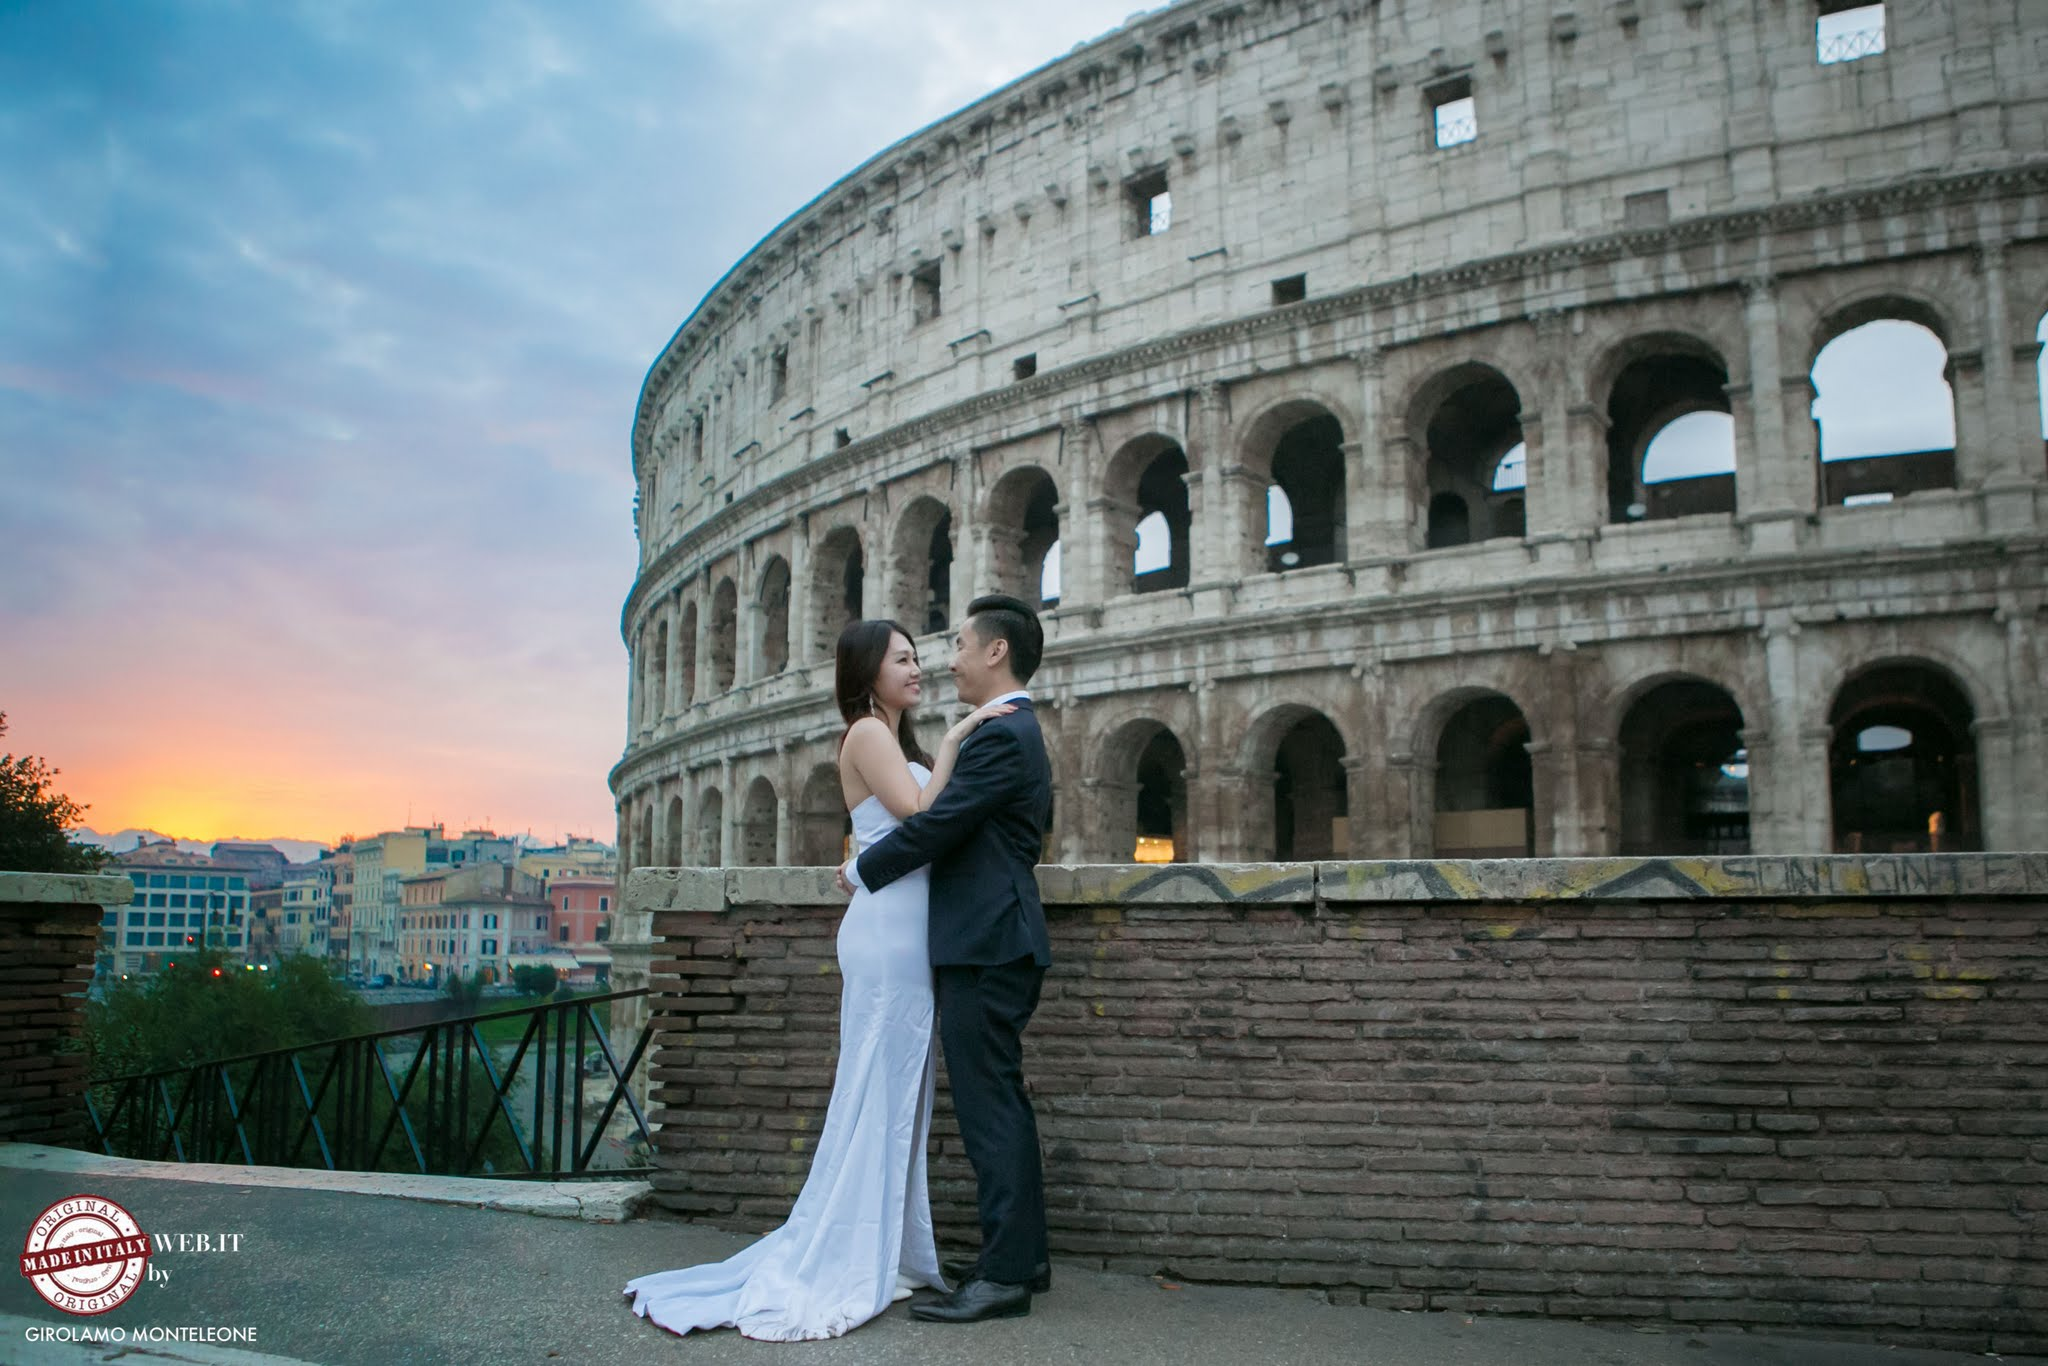 罗马_意大利_摄影师_photographer_in_rome_honeymoon__PHOTOSHOOTING_IN_ROME_ITALY_GERALD_&_JENIE_FROM_SINGAPORE_GIROLAMO_MONTELEONE_PHOTOJOURNALIST2017novembre250717081684